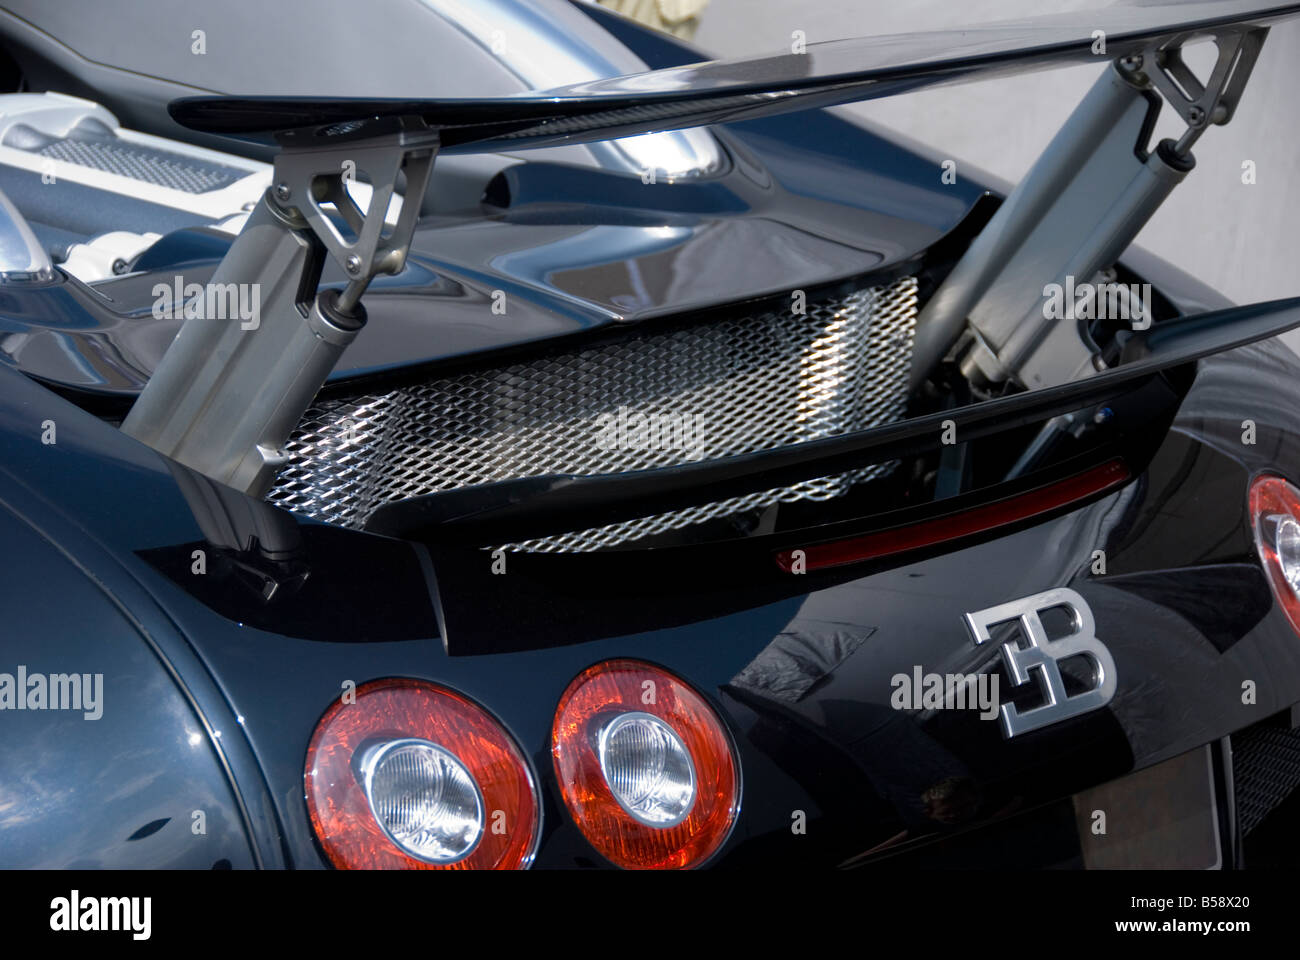 Bugatti Veyron Rear End. This Is The Back Of A Bugatti Veyron, With Its